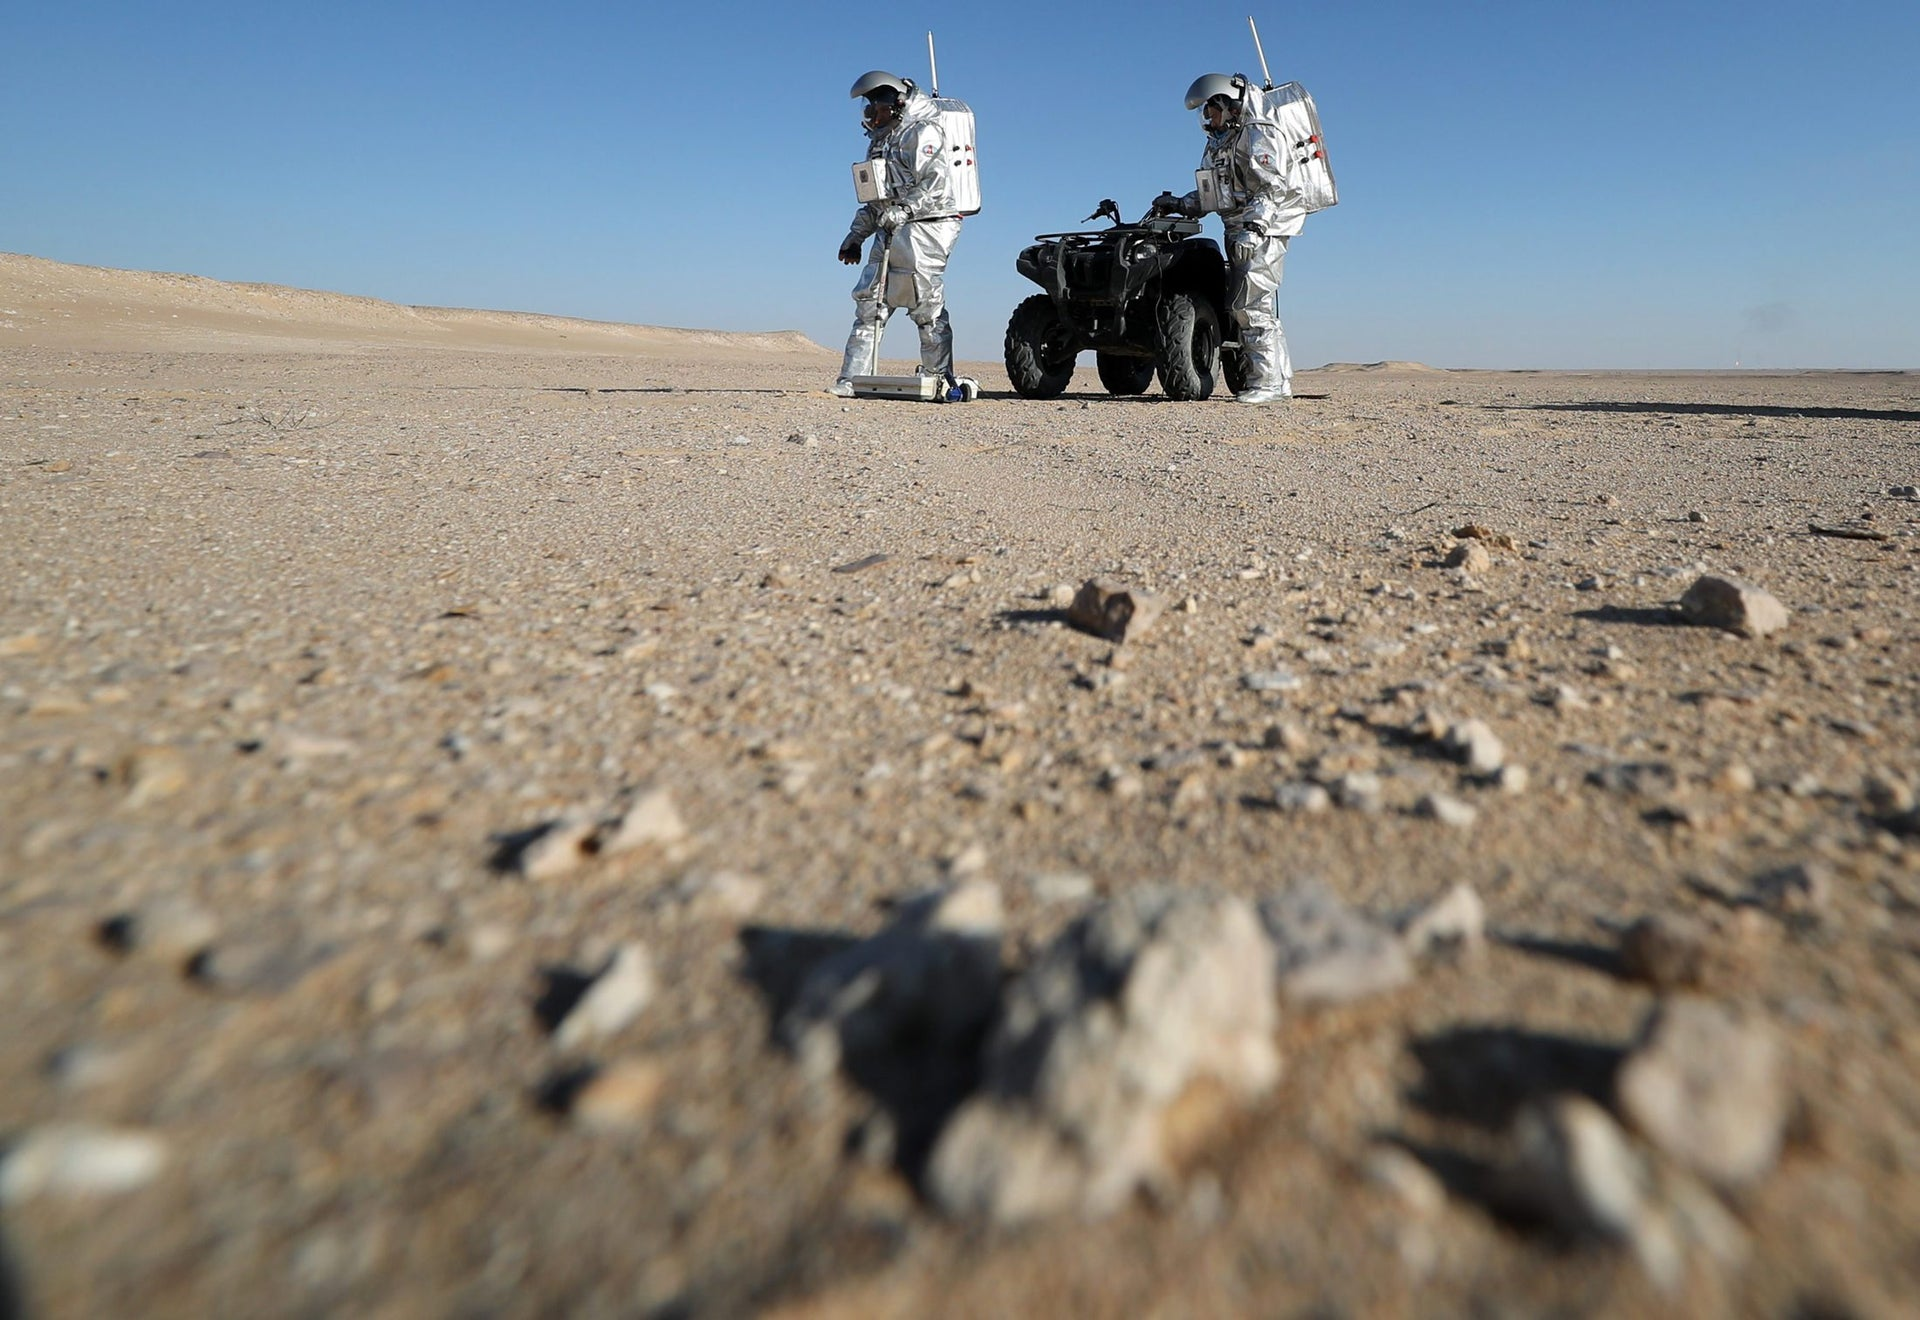 Members of the AMADEE-18 Mars simulation mission in spacesuits. Dhofar desert, Oman. February 7, 2018.